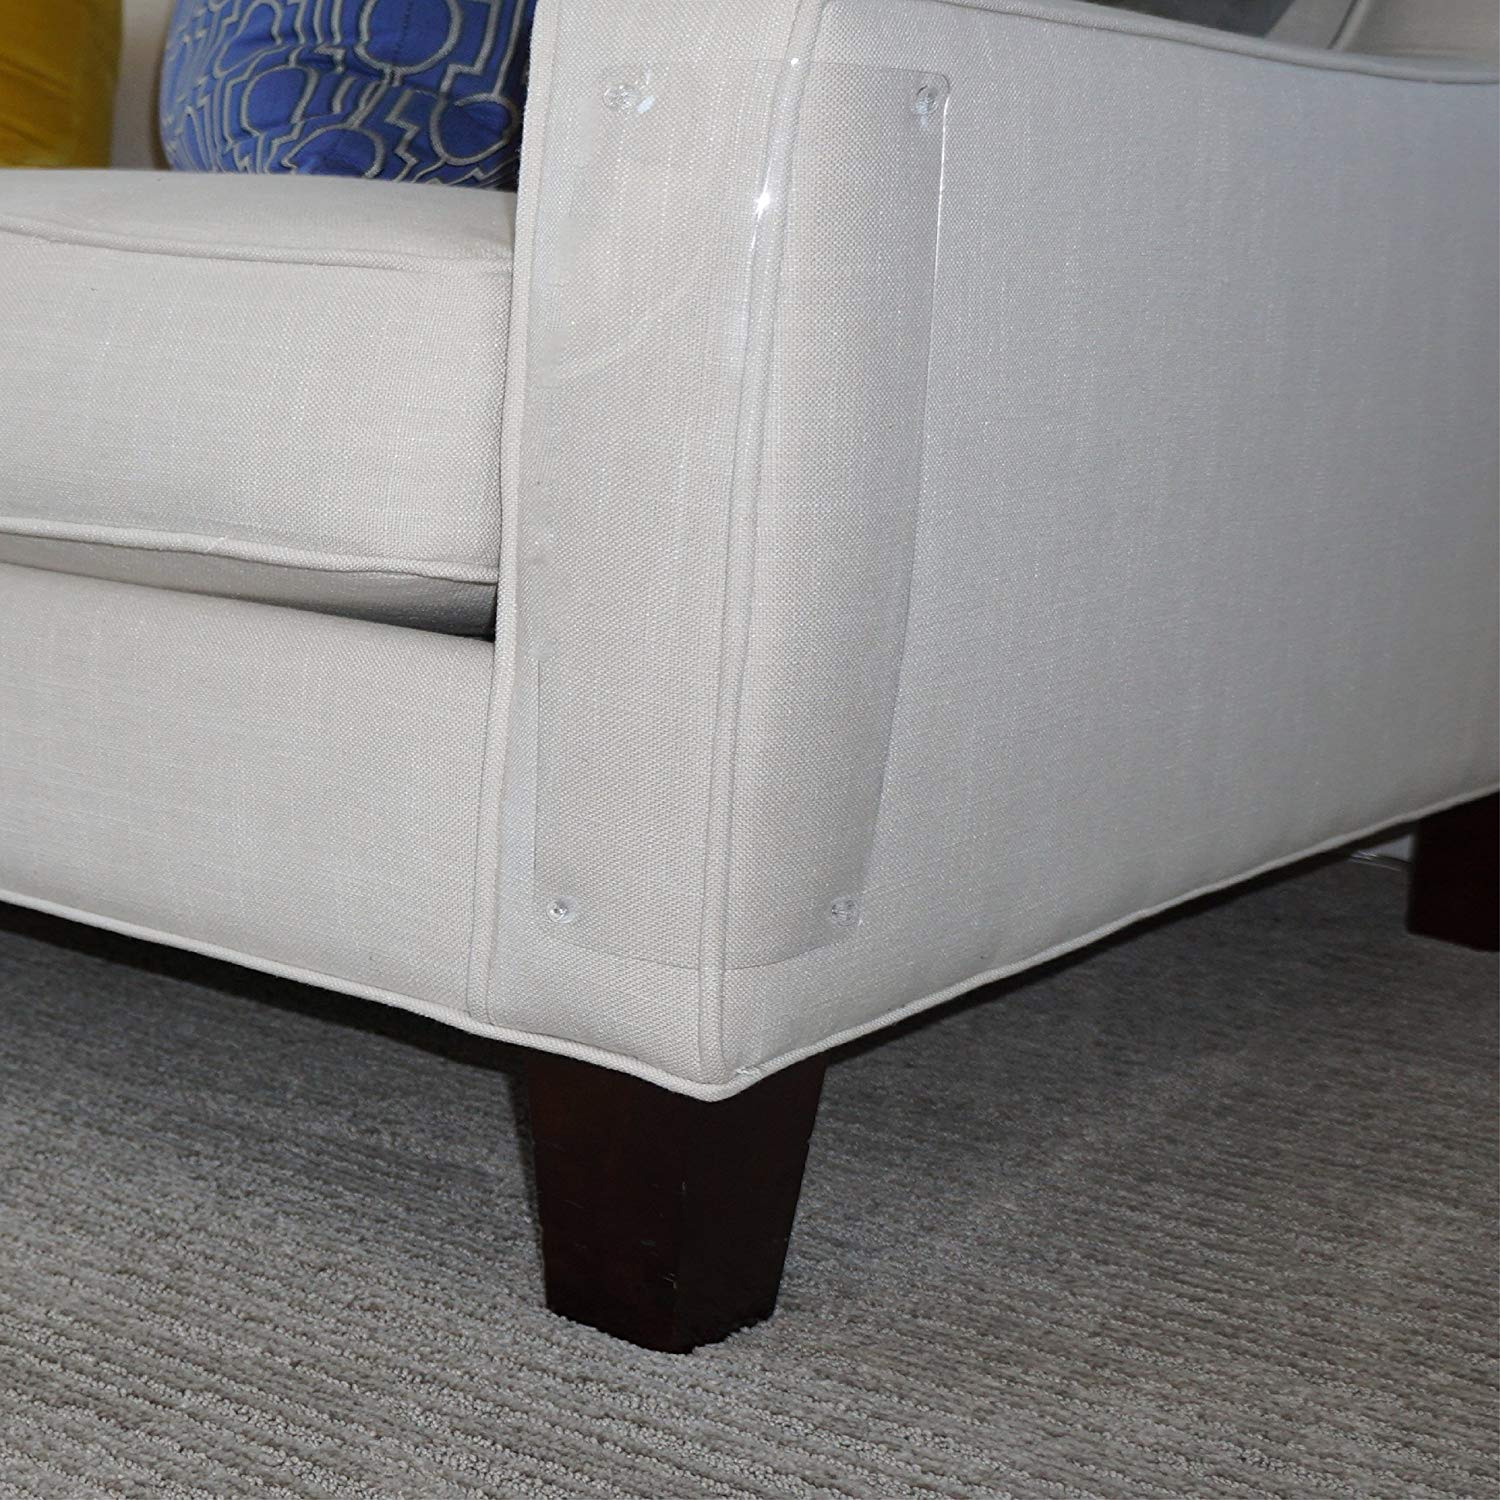 vinyl furniture protector from scratches and chewing